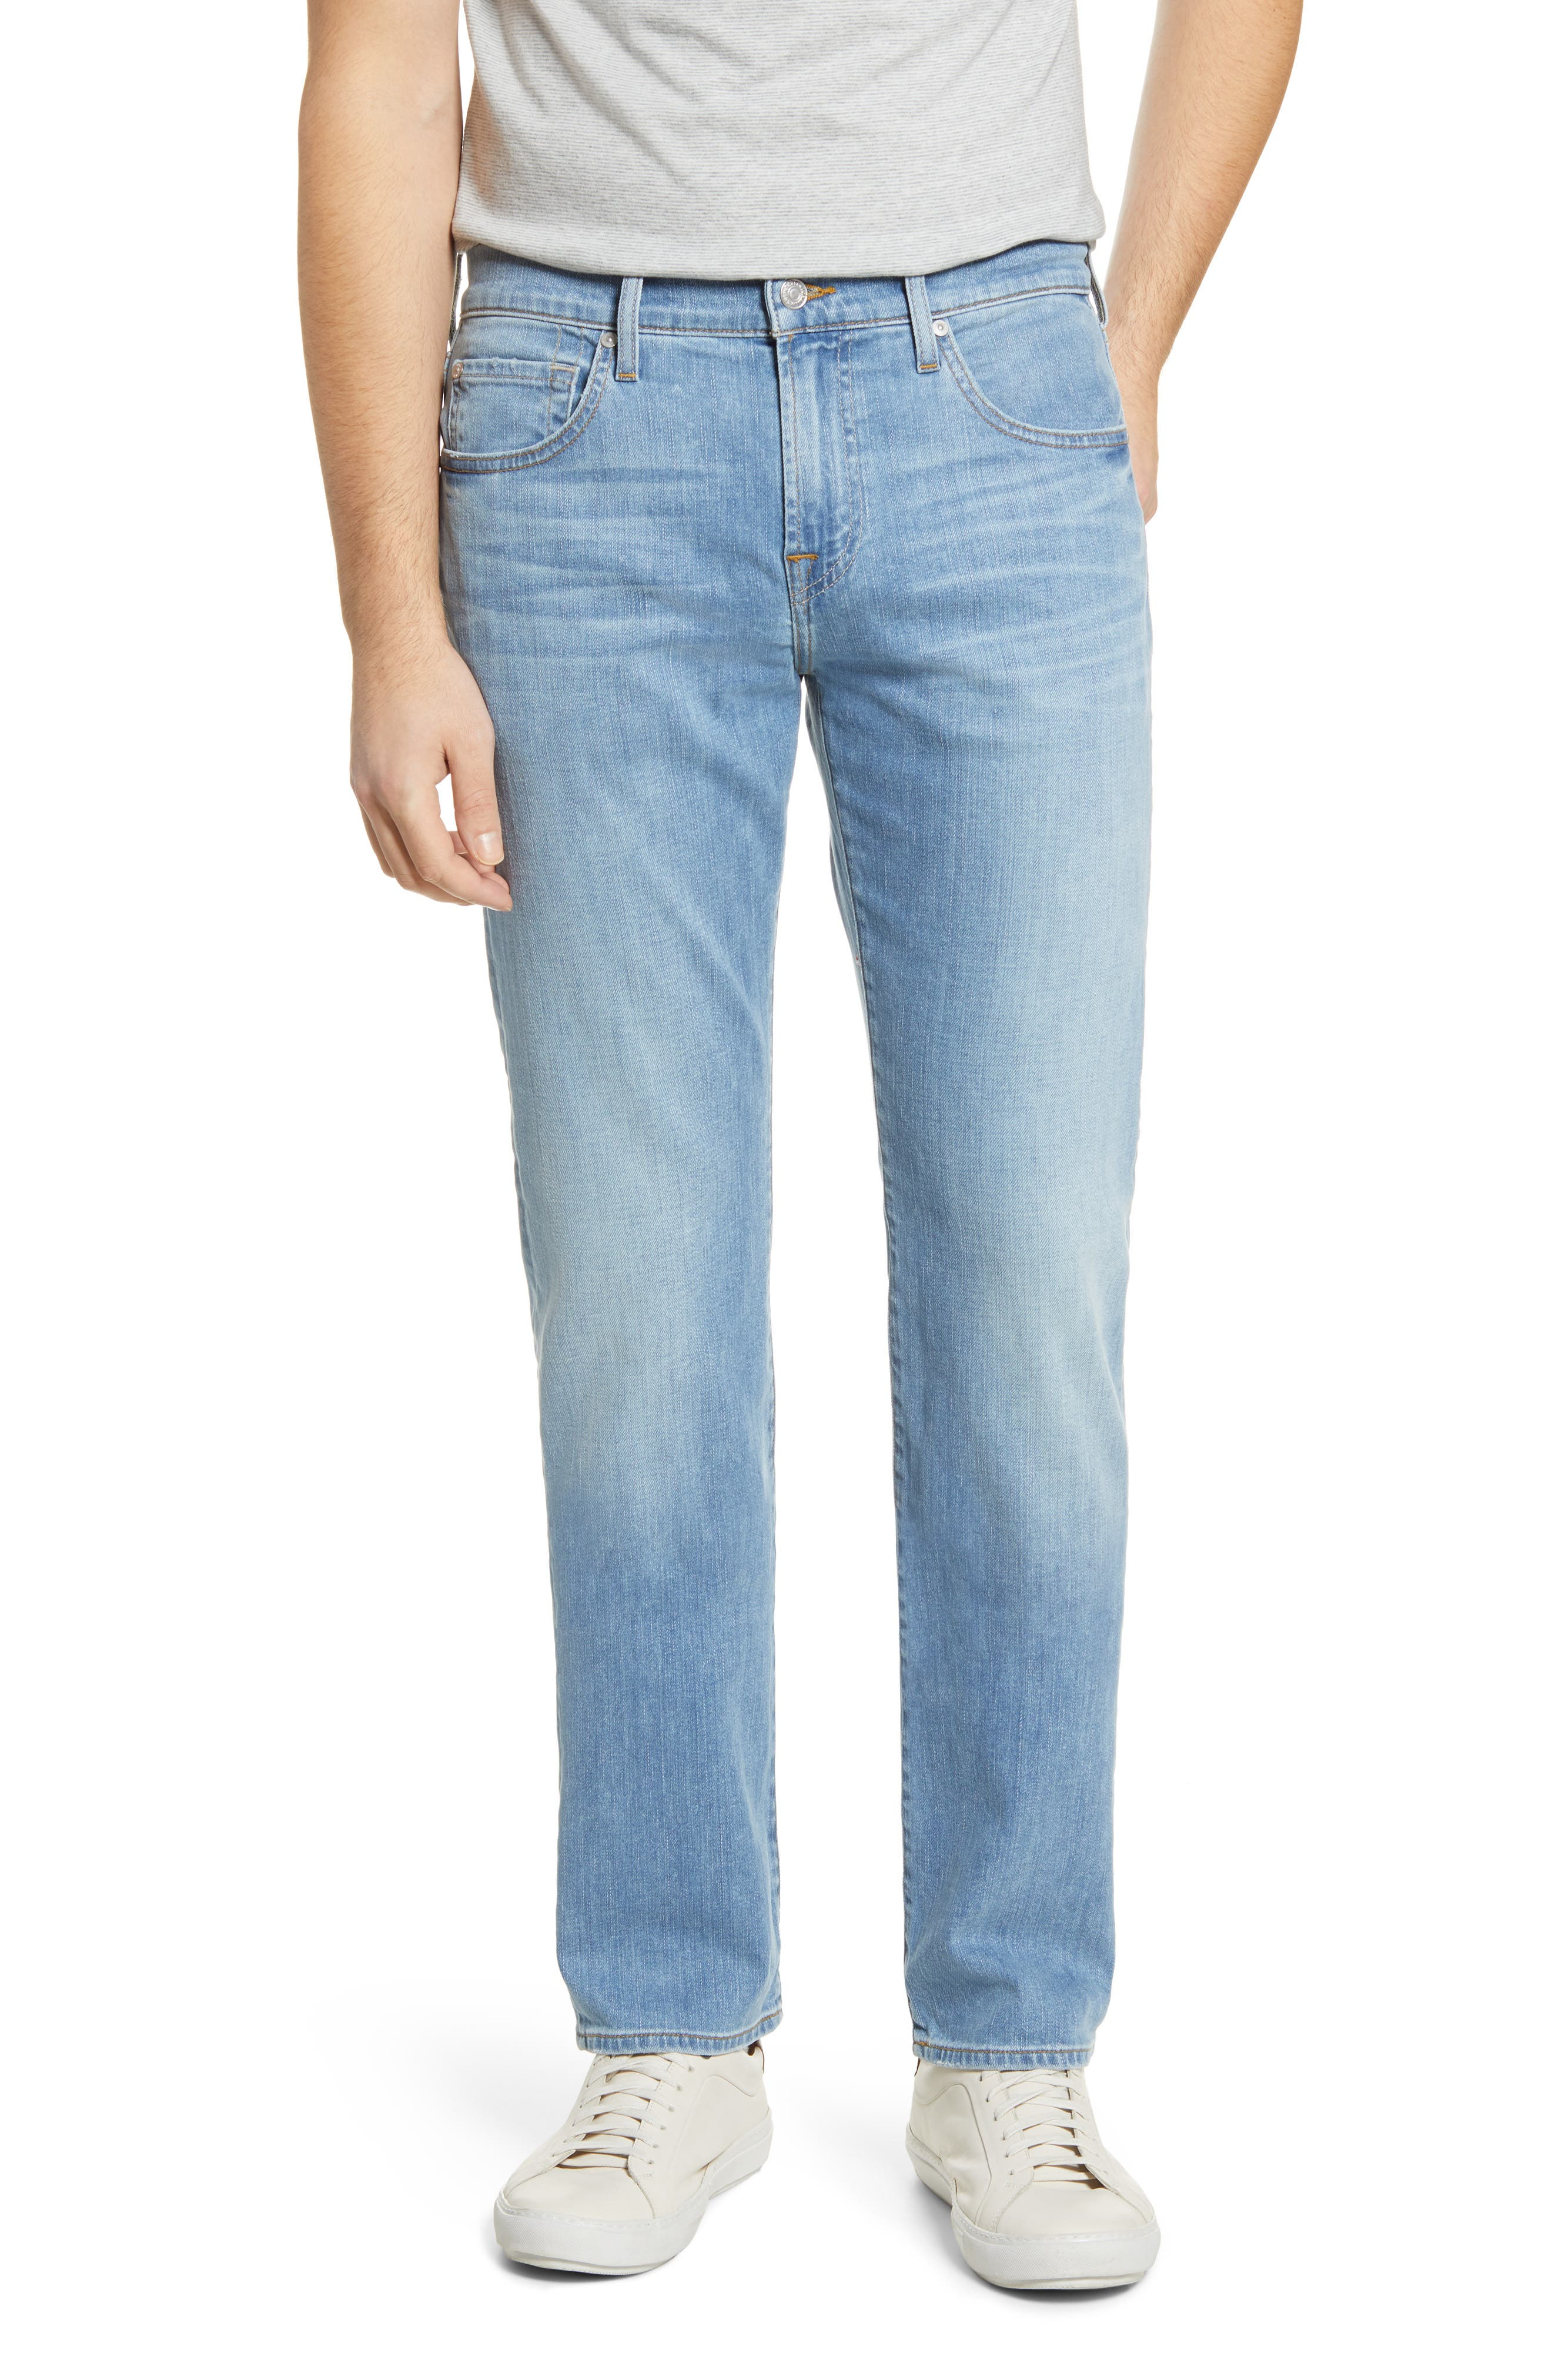 7 For All MankindR Men's 7 For All Mankind The Straight Slim Straight Leg Jeans,  29 - Blue